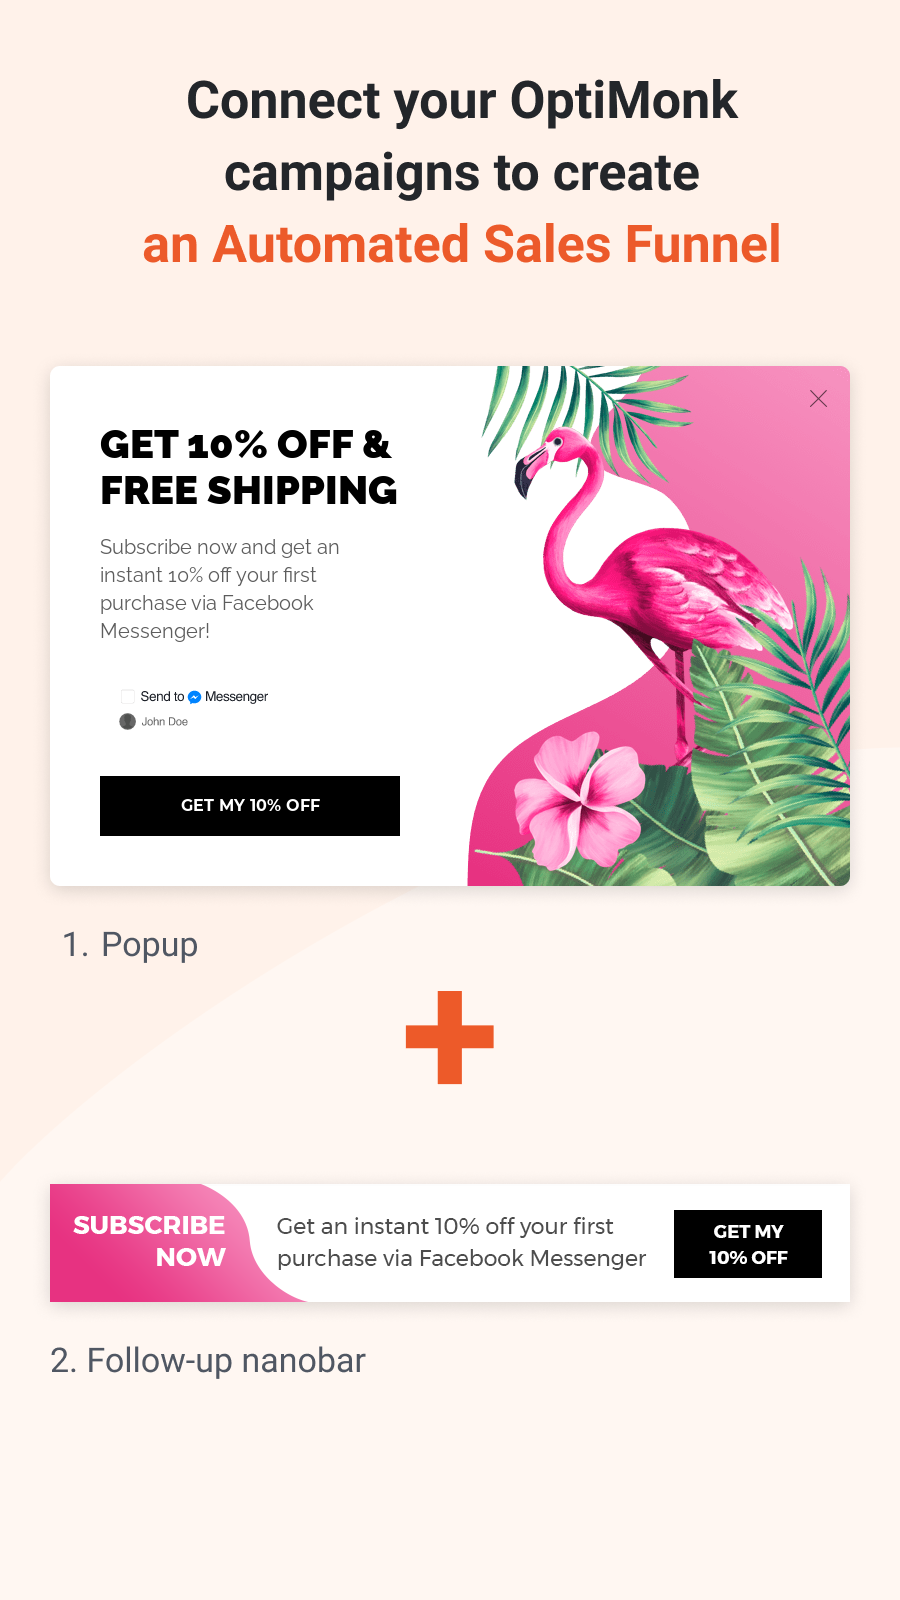 Sync your popups & create an Automated Sales Funnel.